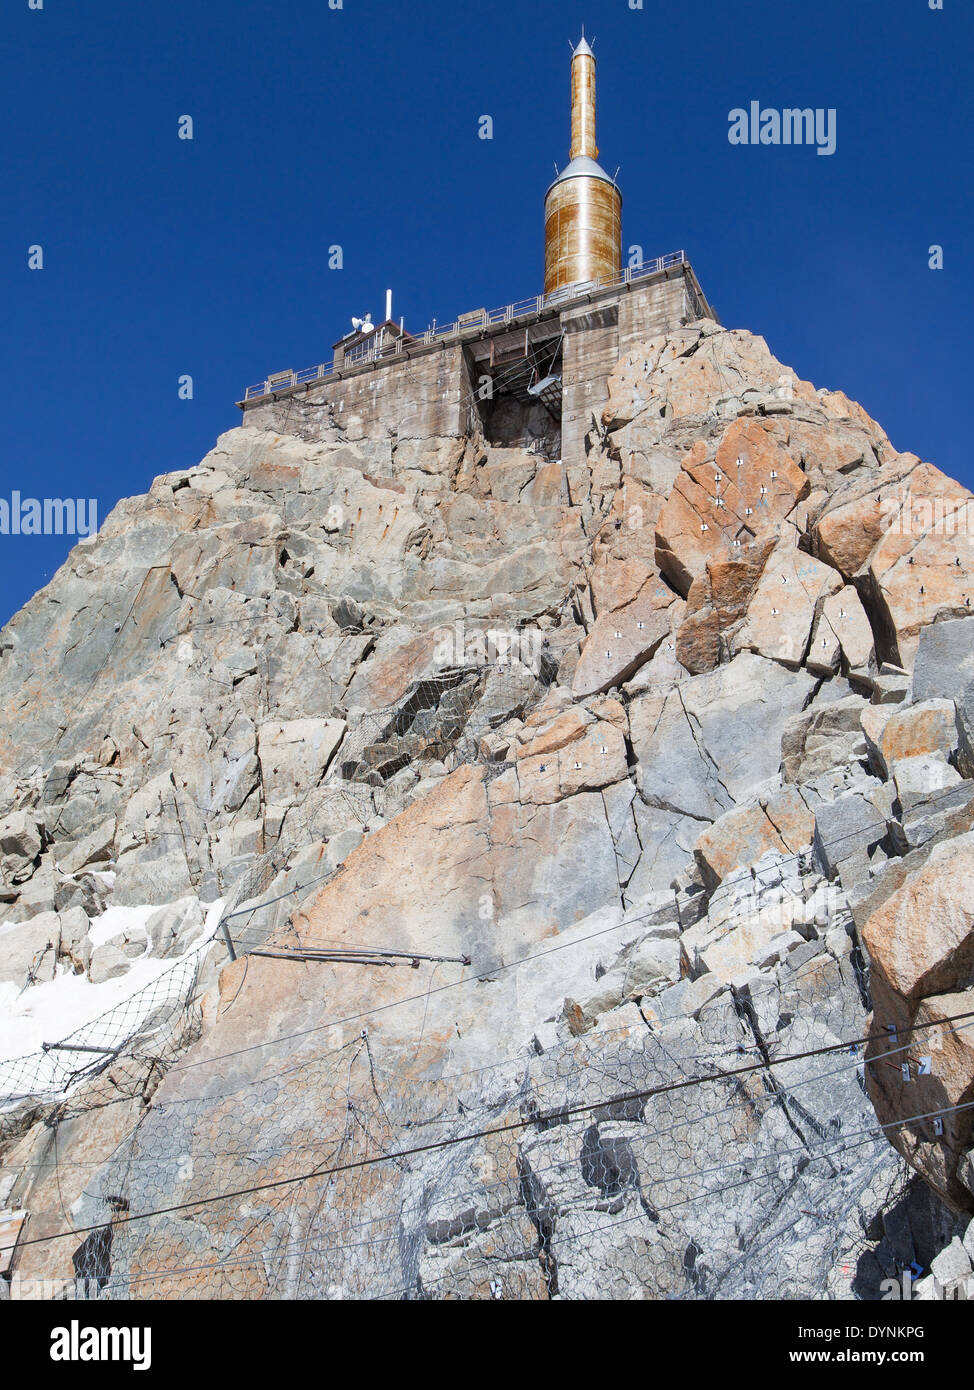 Summit of the Aiguille du Midi at 3842 meters high in the French Alps. - Stock Image